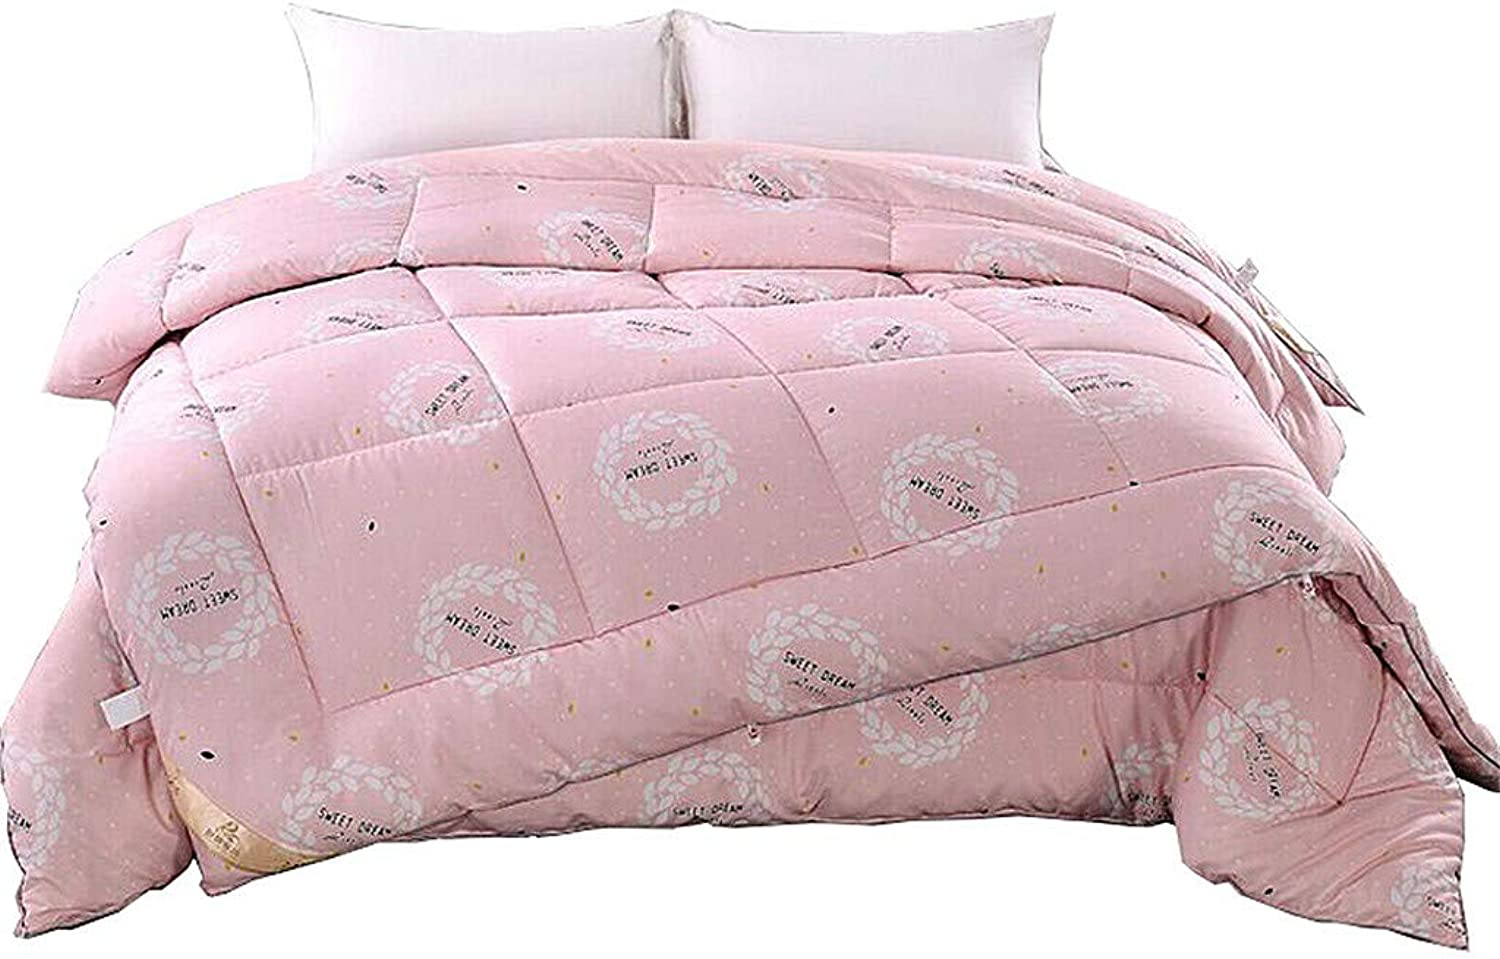 Quilts Stitched Down Alternative Comforter Quilt 100% Cotton Fabrics Thicken Warm and Soft Lightweight Comforter Pink Quilt Warm and Soft for All Season